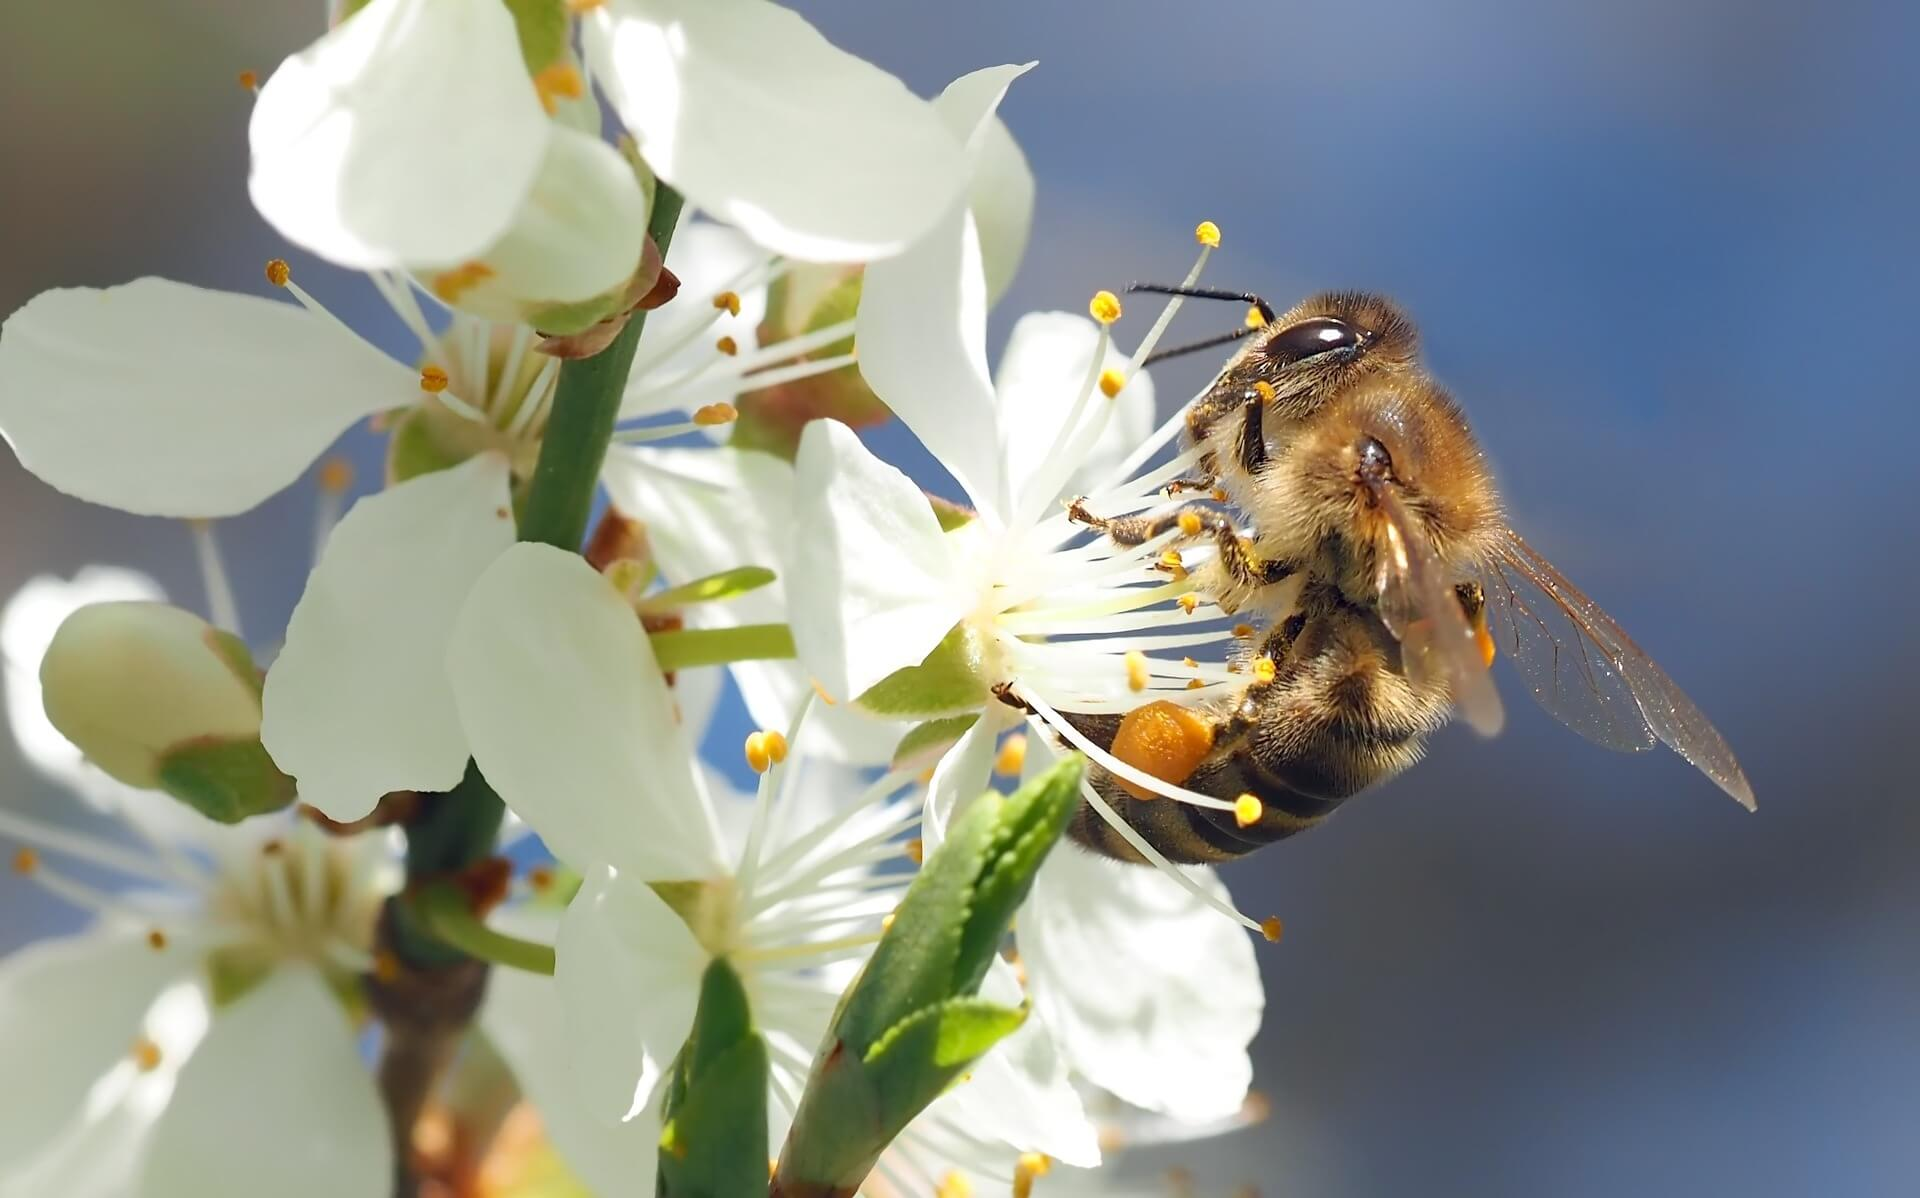 Tips for Avoiding Bees and Preventing Bee Stings